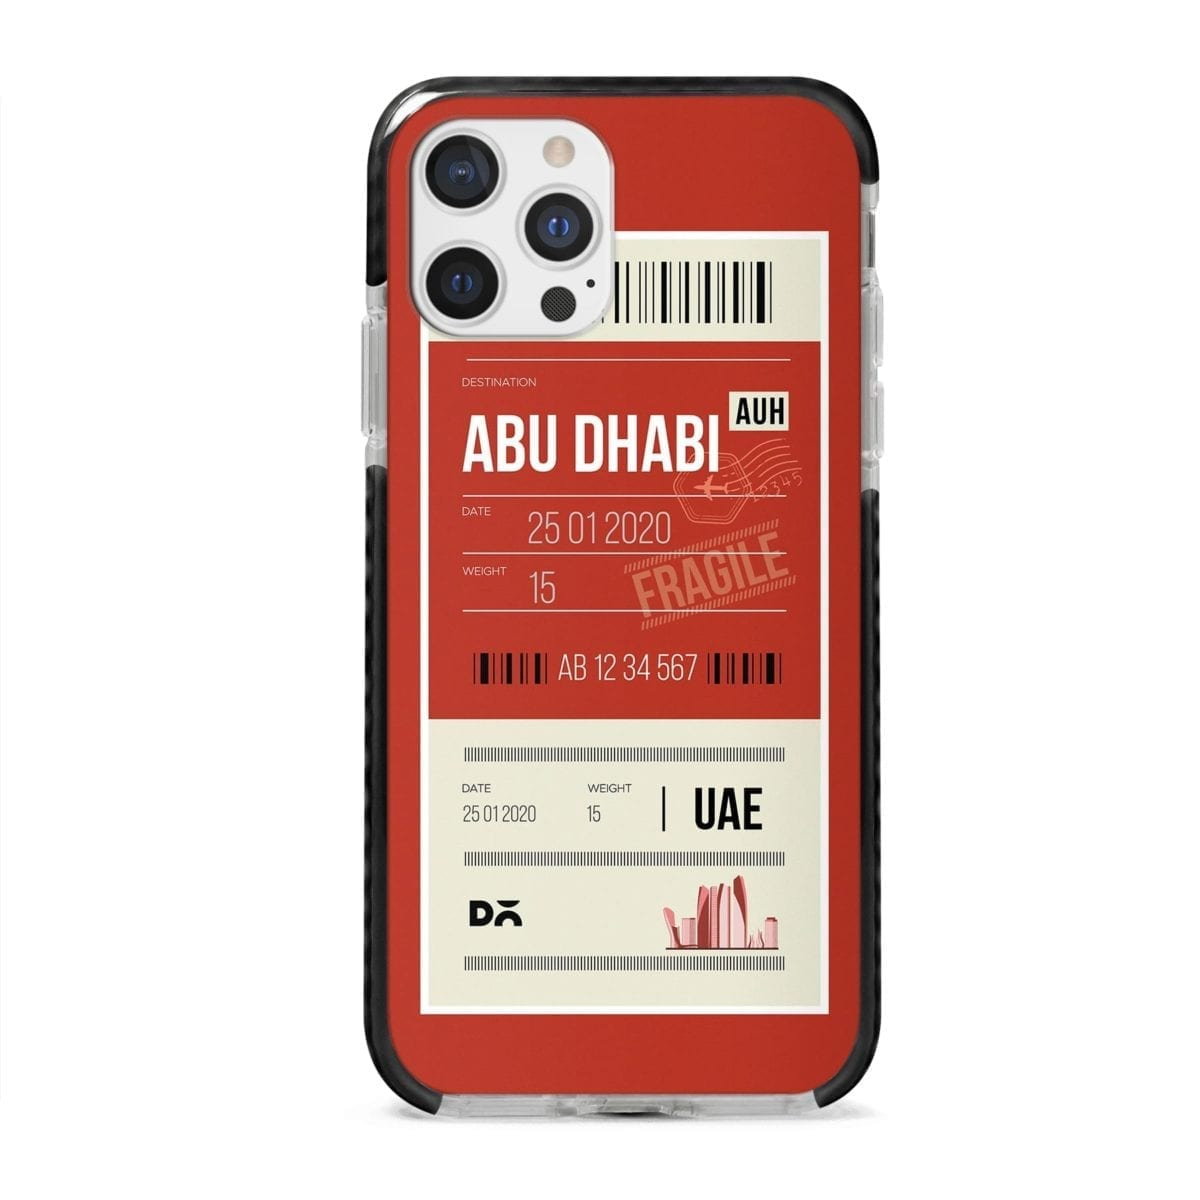 Abu Dhabi Case Cover for Apple iPhone 12 Pro and Apple iPhone 12 Pro Max with great design and shock proof | Klippik | Online Shopping | Kuwait UAE Saudi